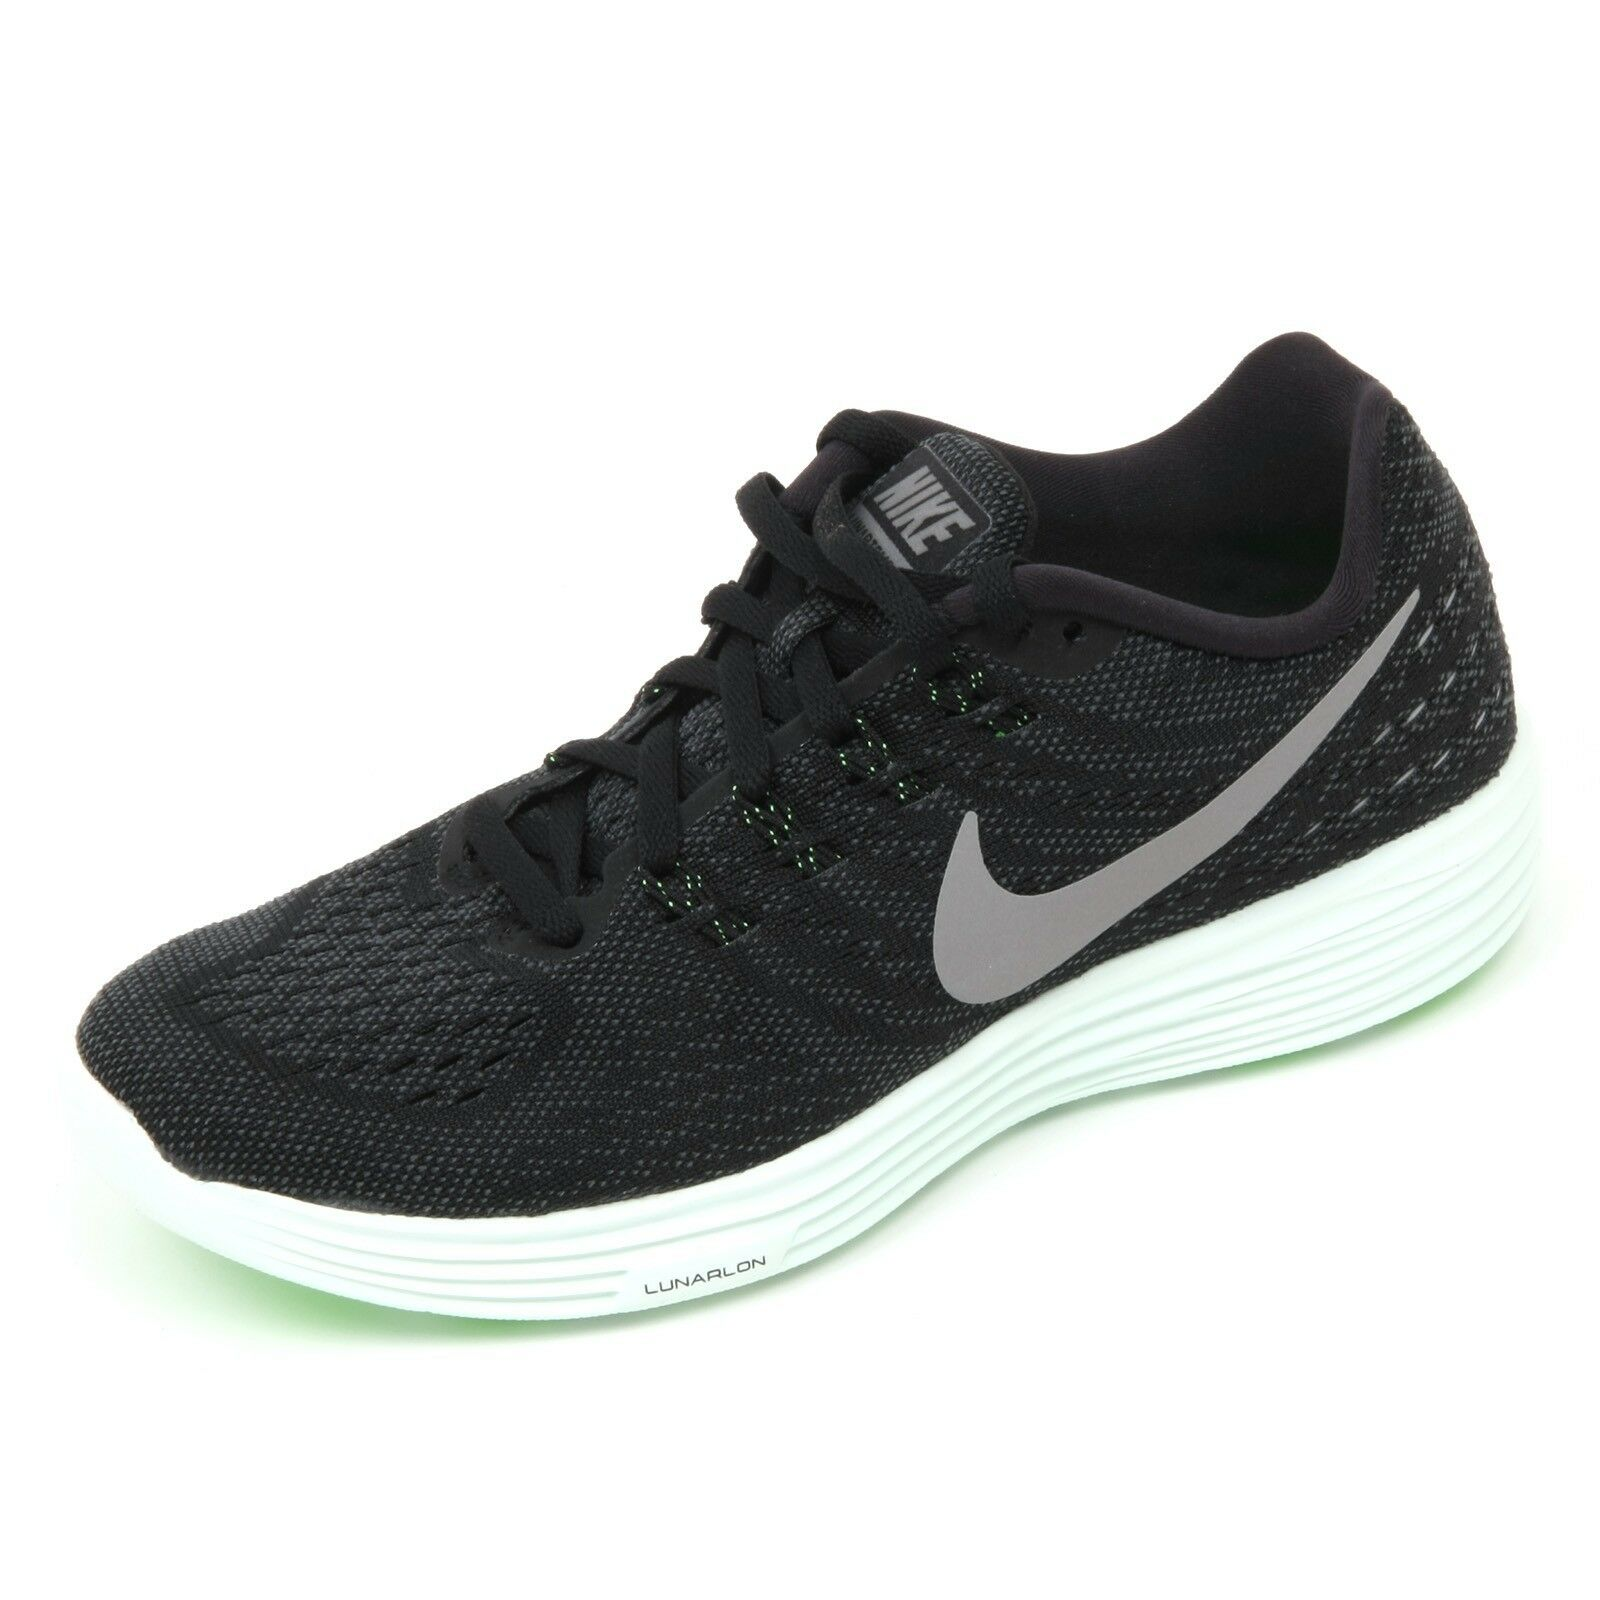 C5962 Sneaker mujer kg) NIKE LUNARTEMPO 2 lb (approx. 0.91 kg) mujer NERO/Gris Zapato Mujer 58706d